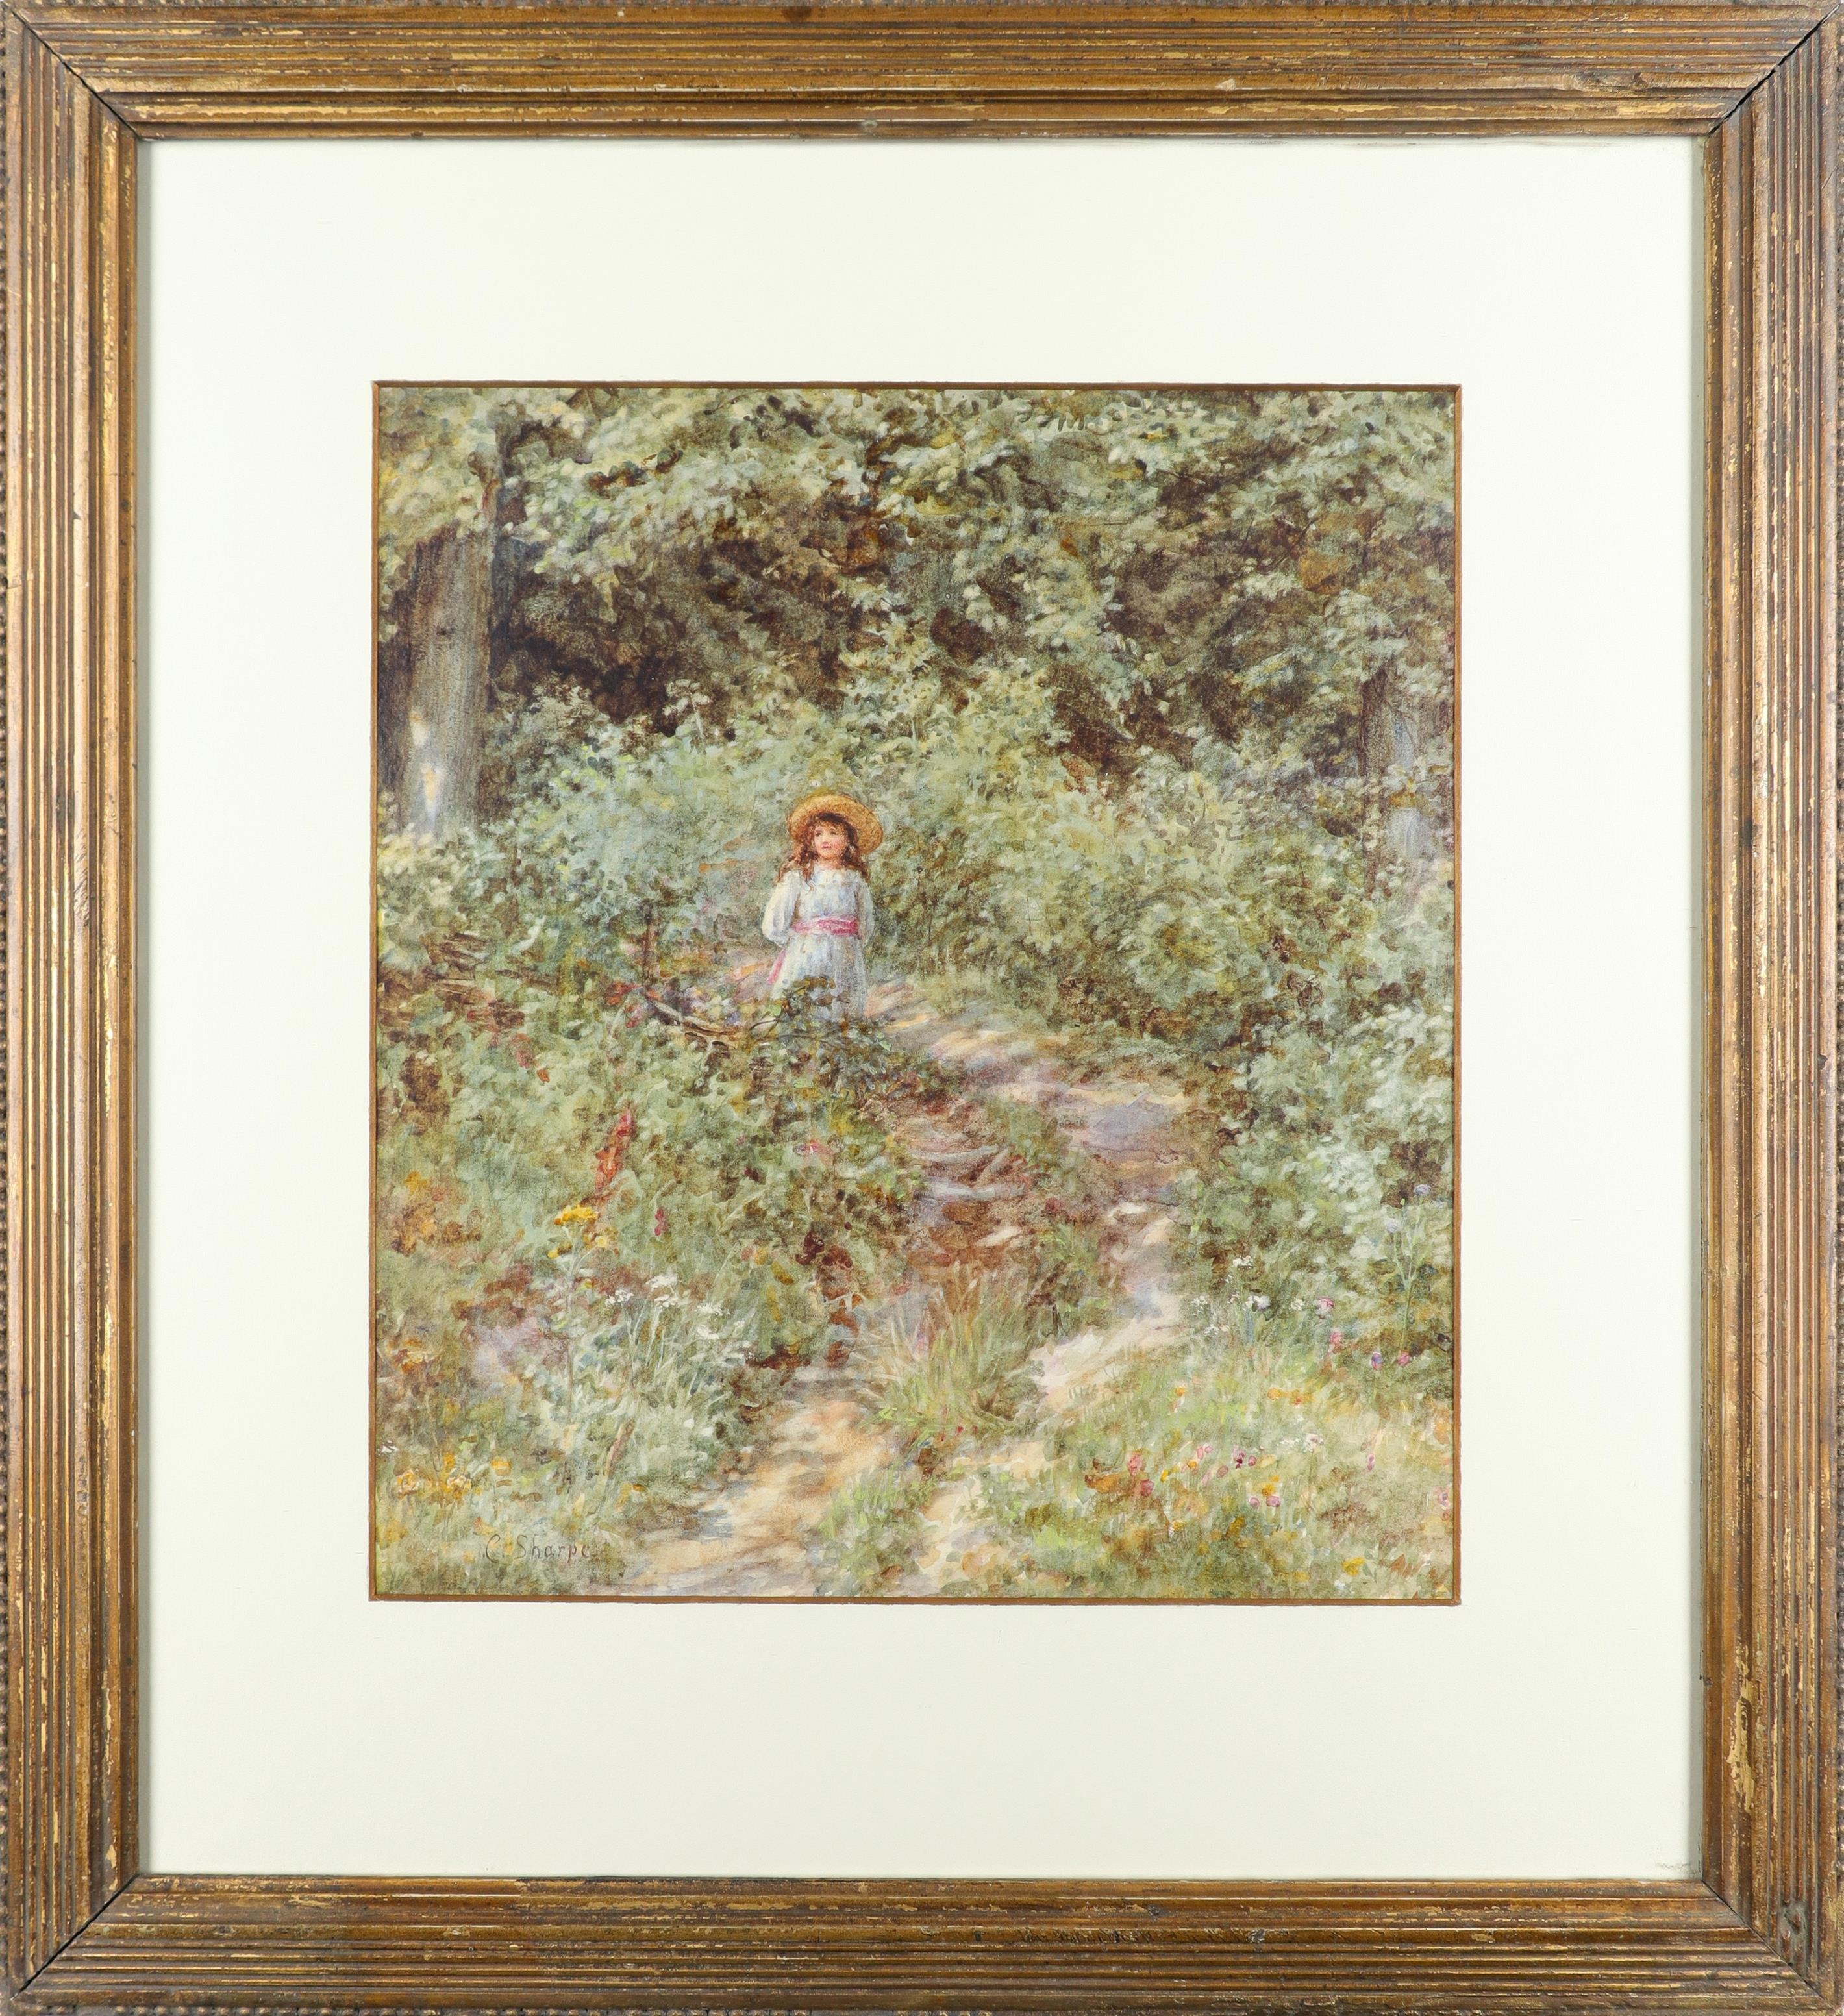 Caroline Sharpe, née Paterson (1856-1911) The Path Through the Wood Signed C. Sharpe (lower left) - Image 2 of 3